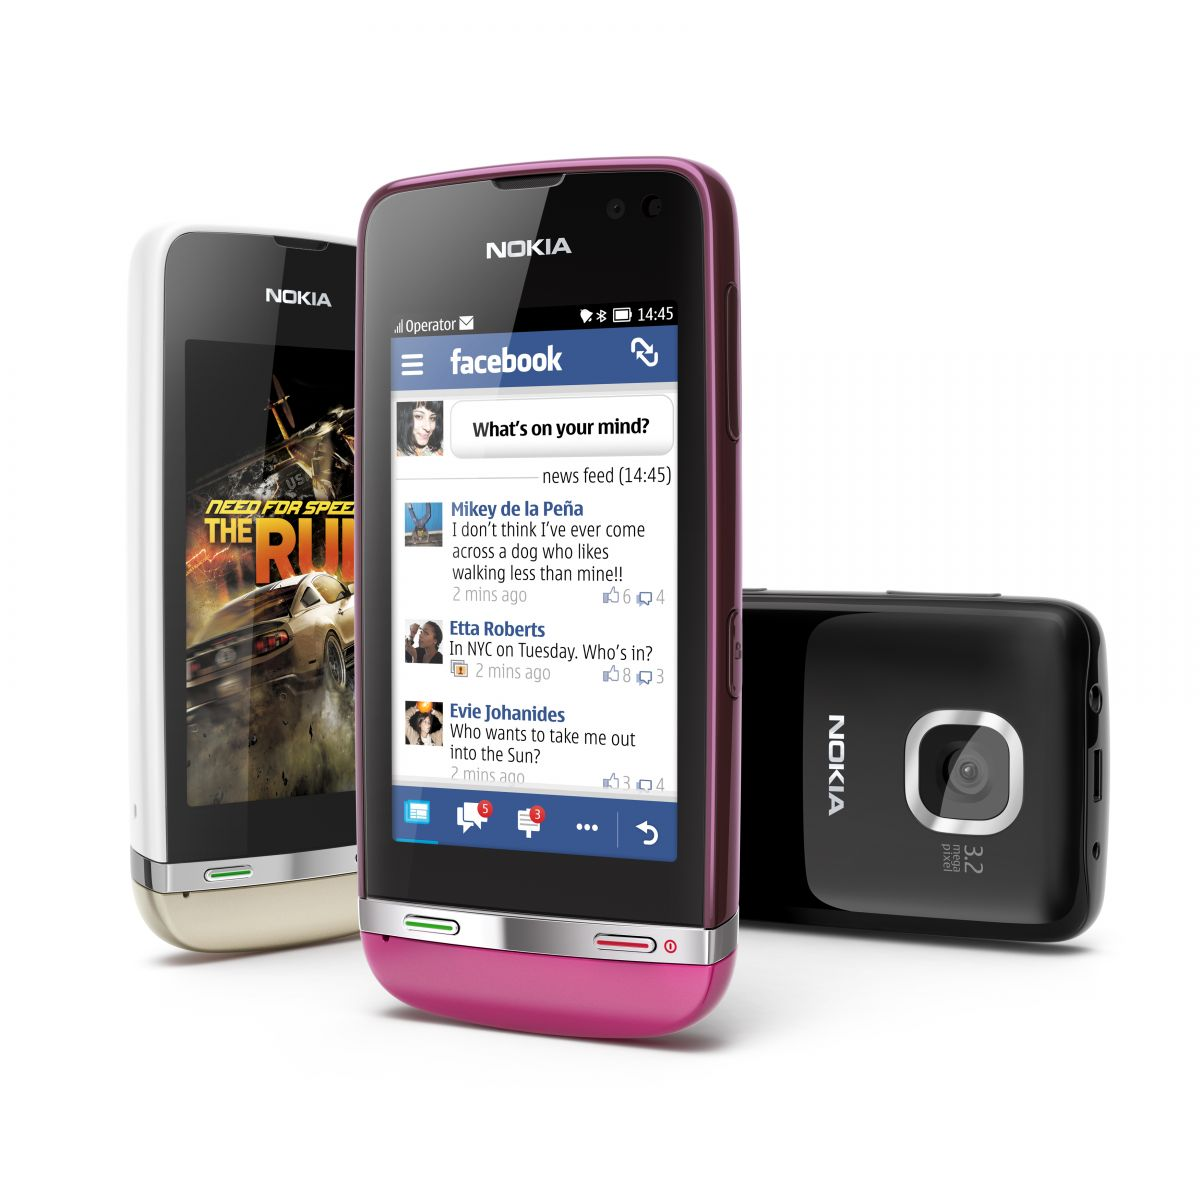 1200 nokia asha 311 group - Nokia Asha 311 now available in Philippines